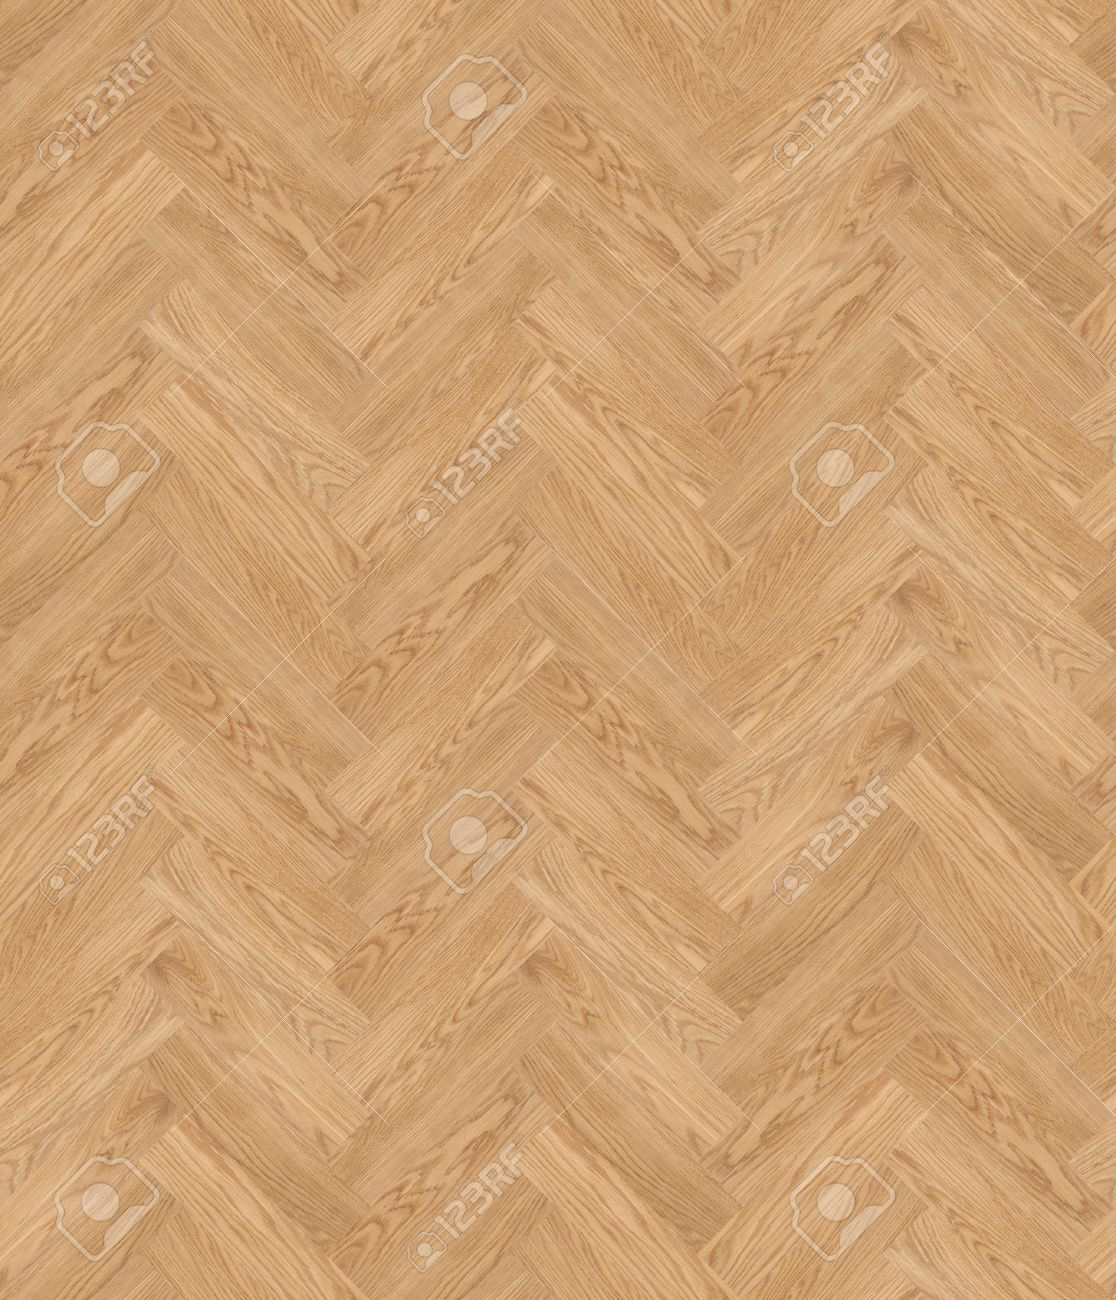 Seamless Oak Parquet Texture Stock Photo Picture And Royalty Free